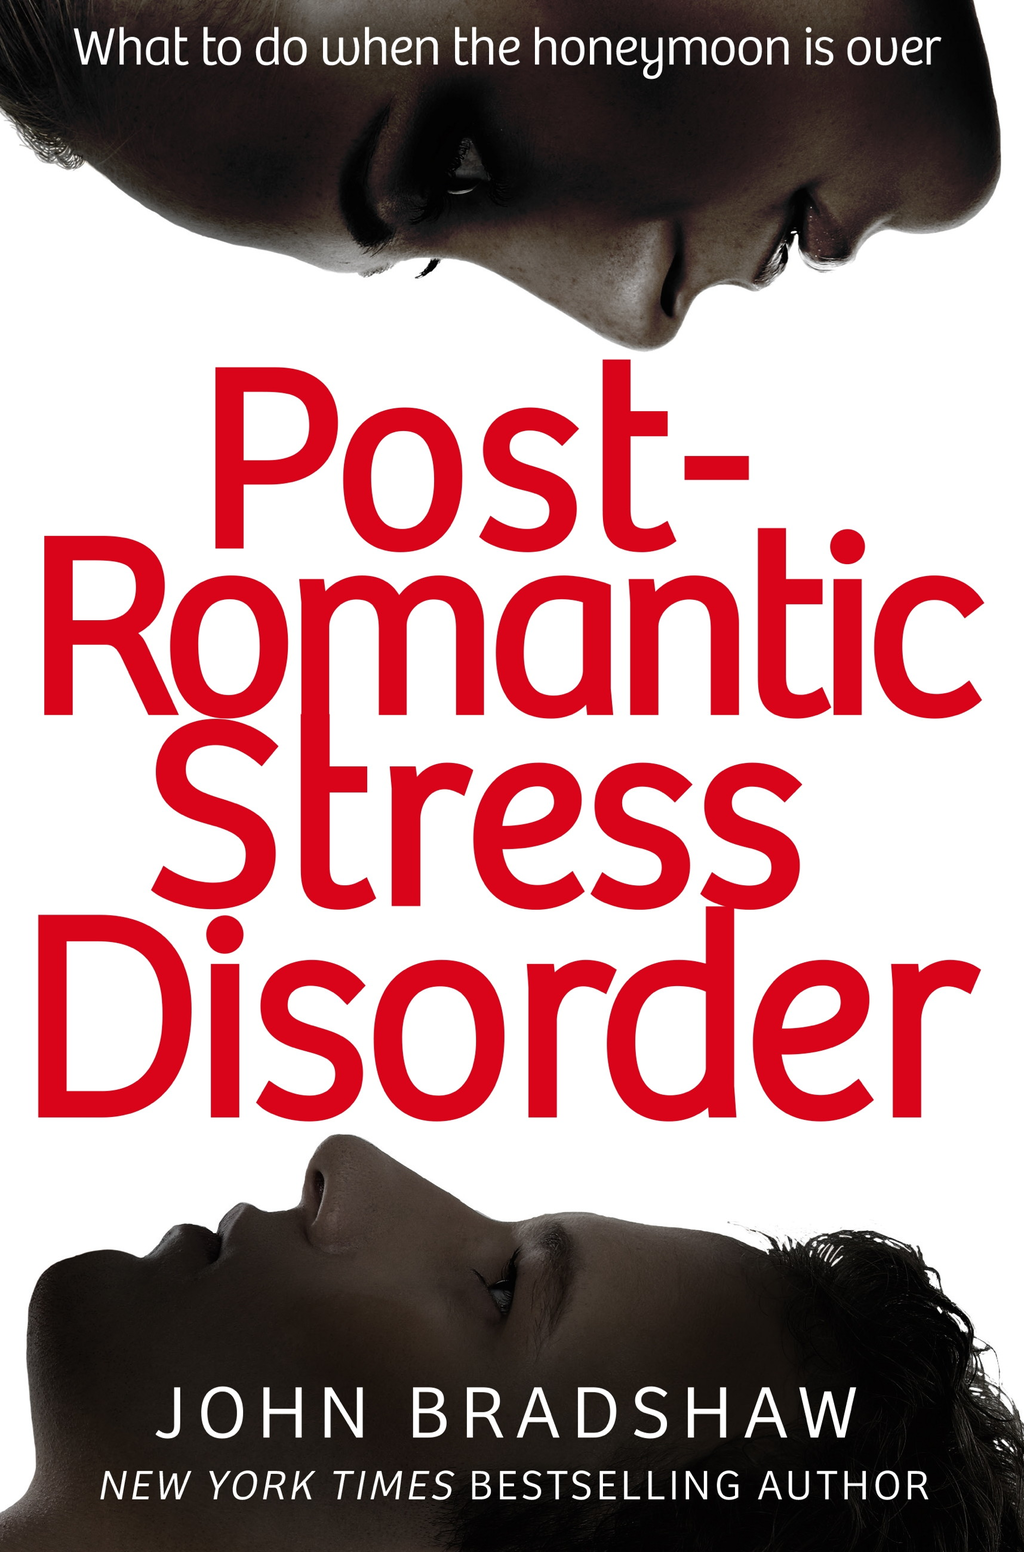 Post-Romantic Stress Disorder What to do when the honeymoon is over